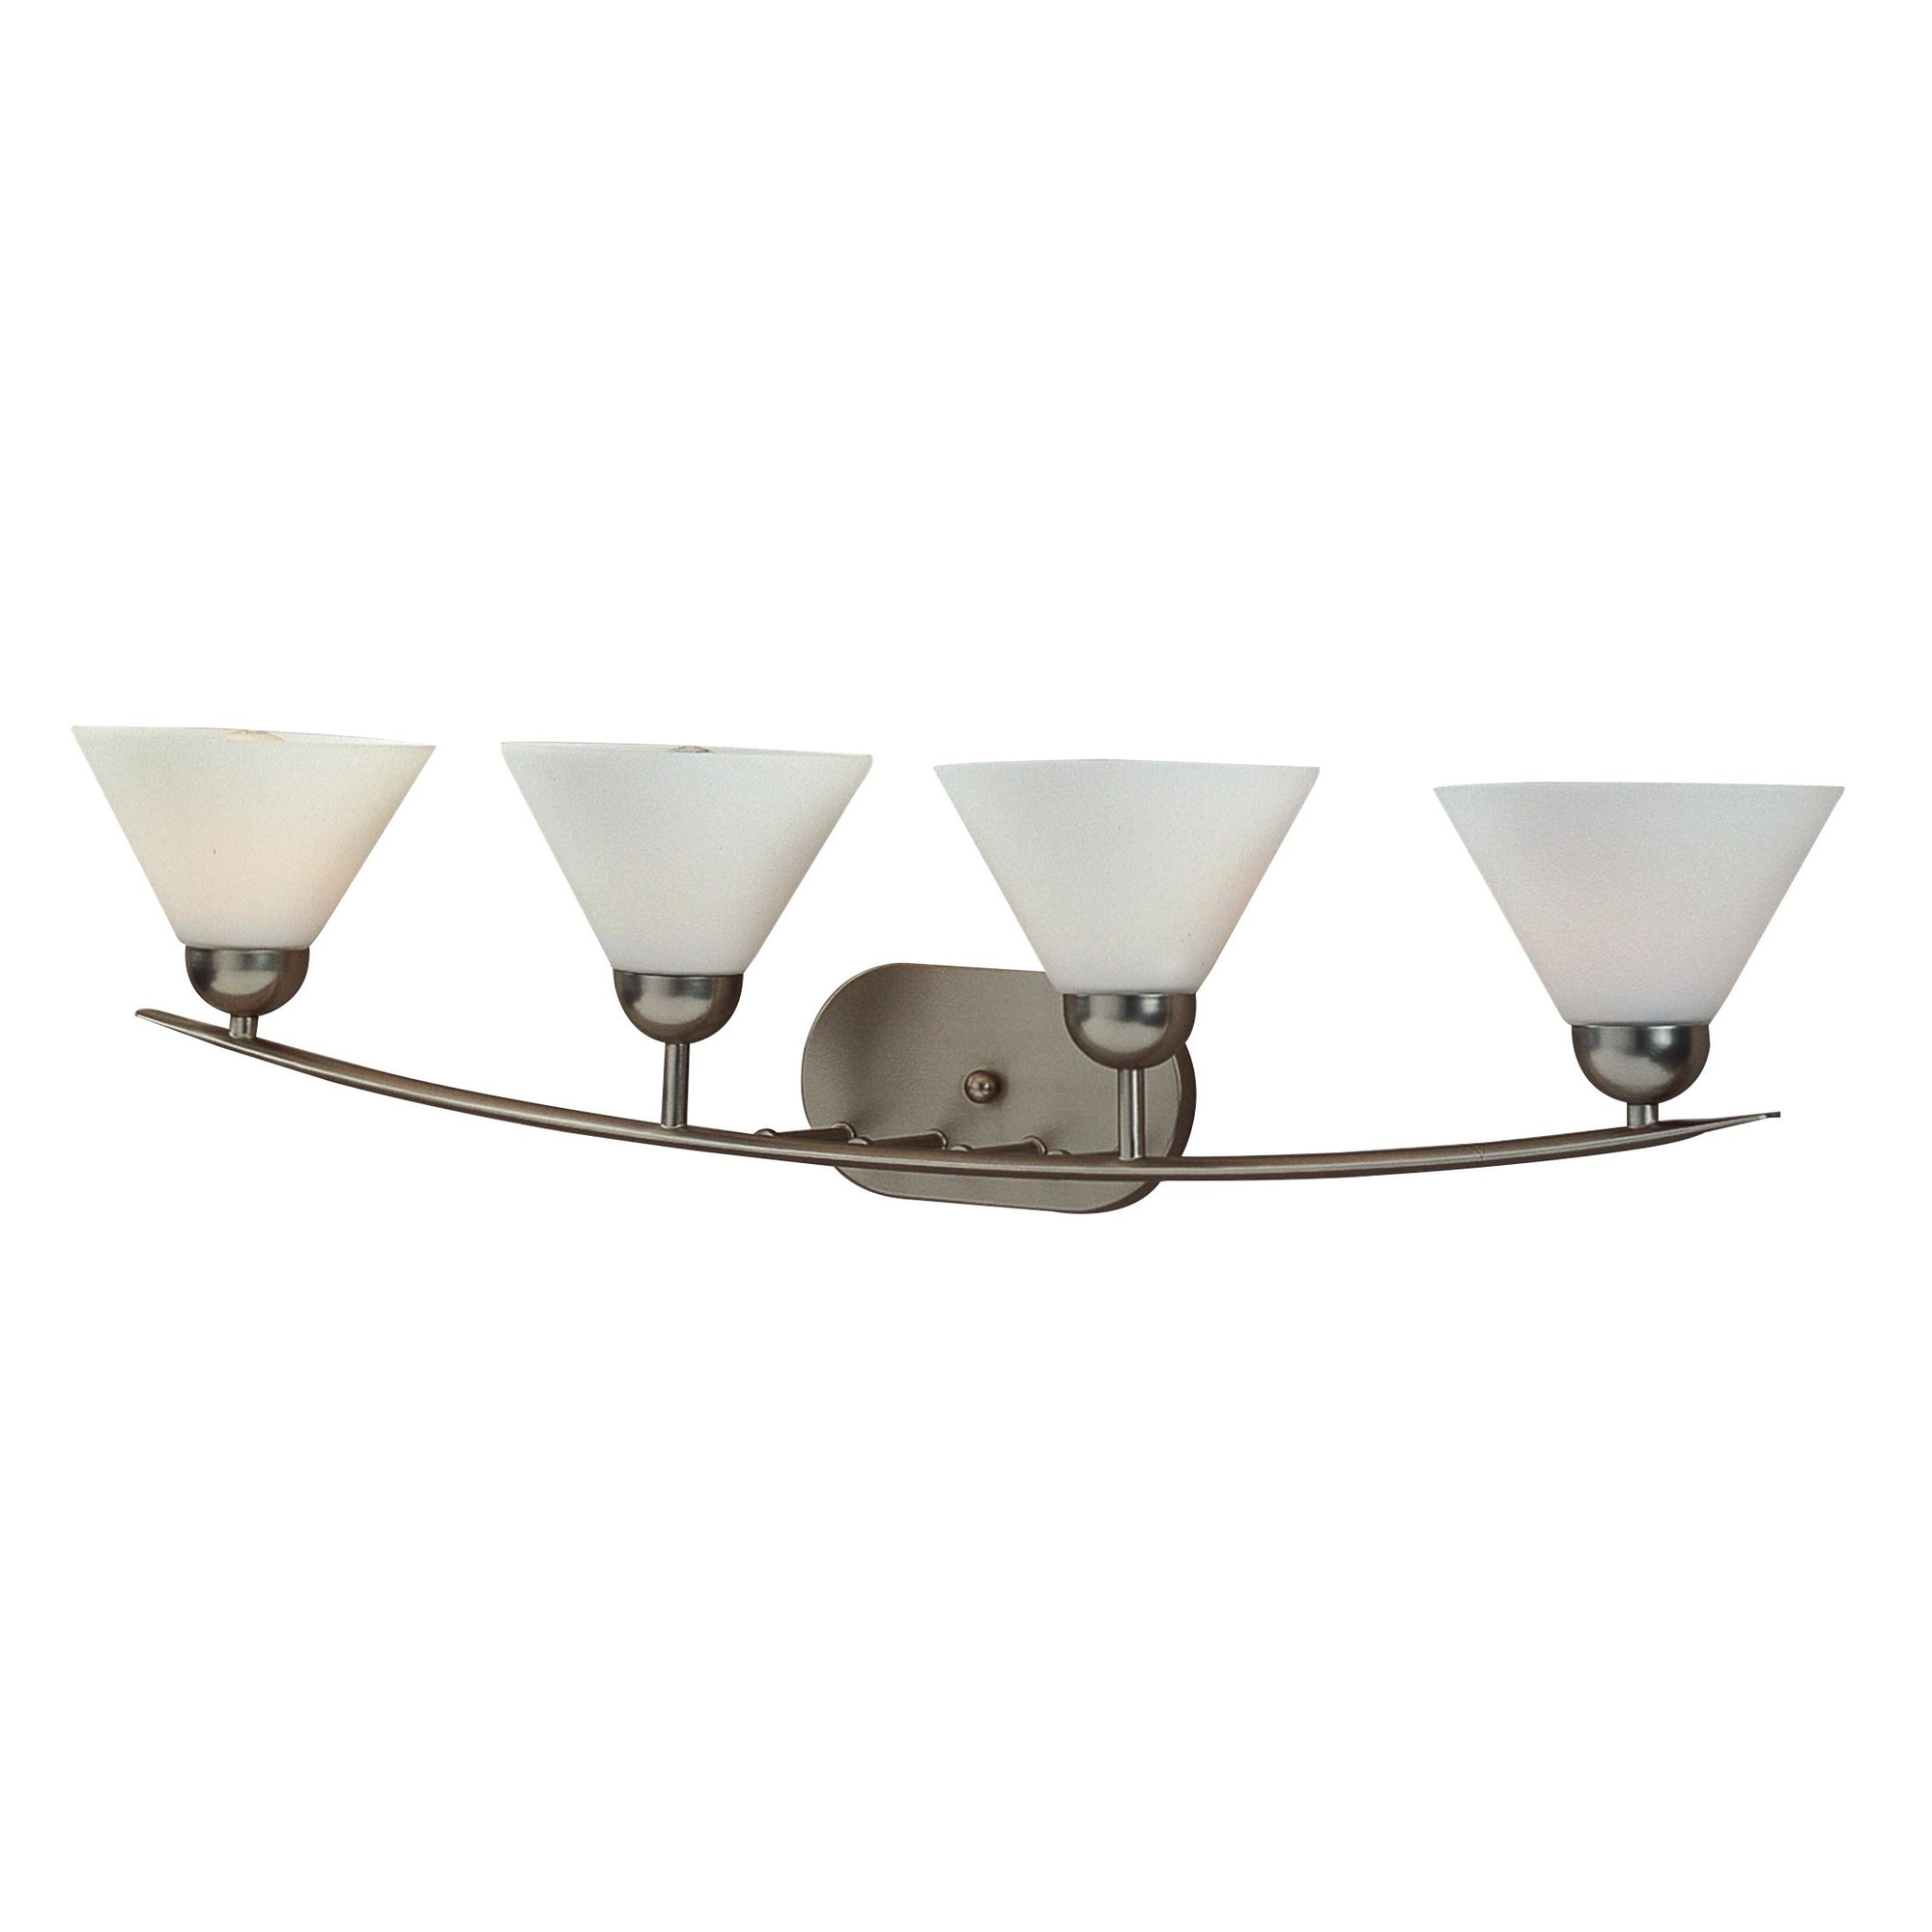 Quoizel Lighting DI8504ES 4-Light Contemporary/Modern Up/Down Mount ...